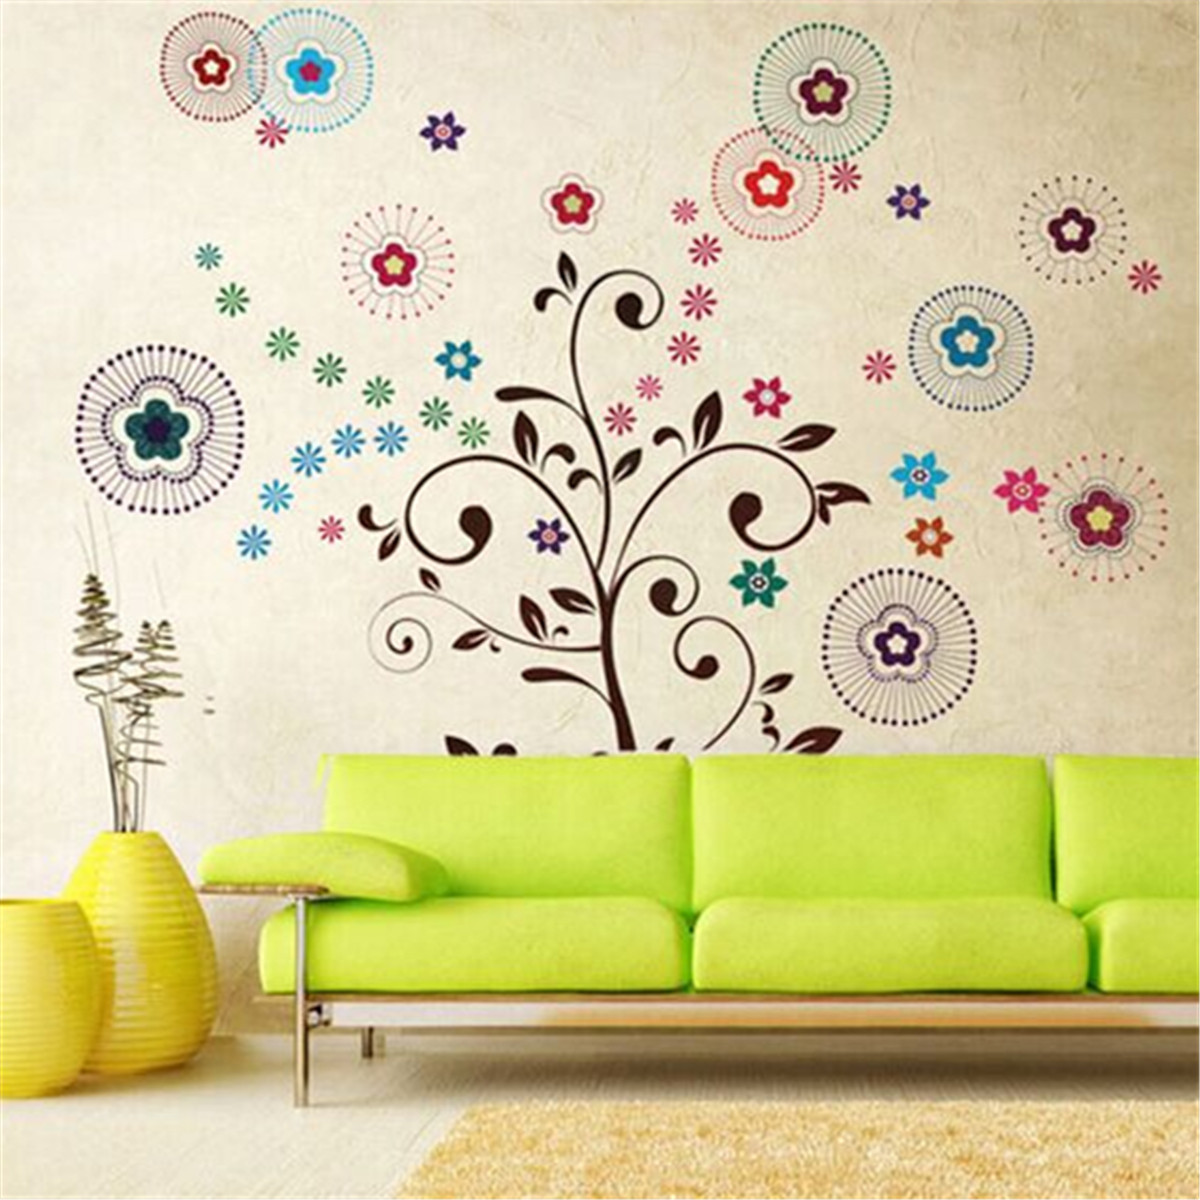 45 style vinyl quote home bedroom decor art wall stickers for Stickers para dormitorios